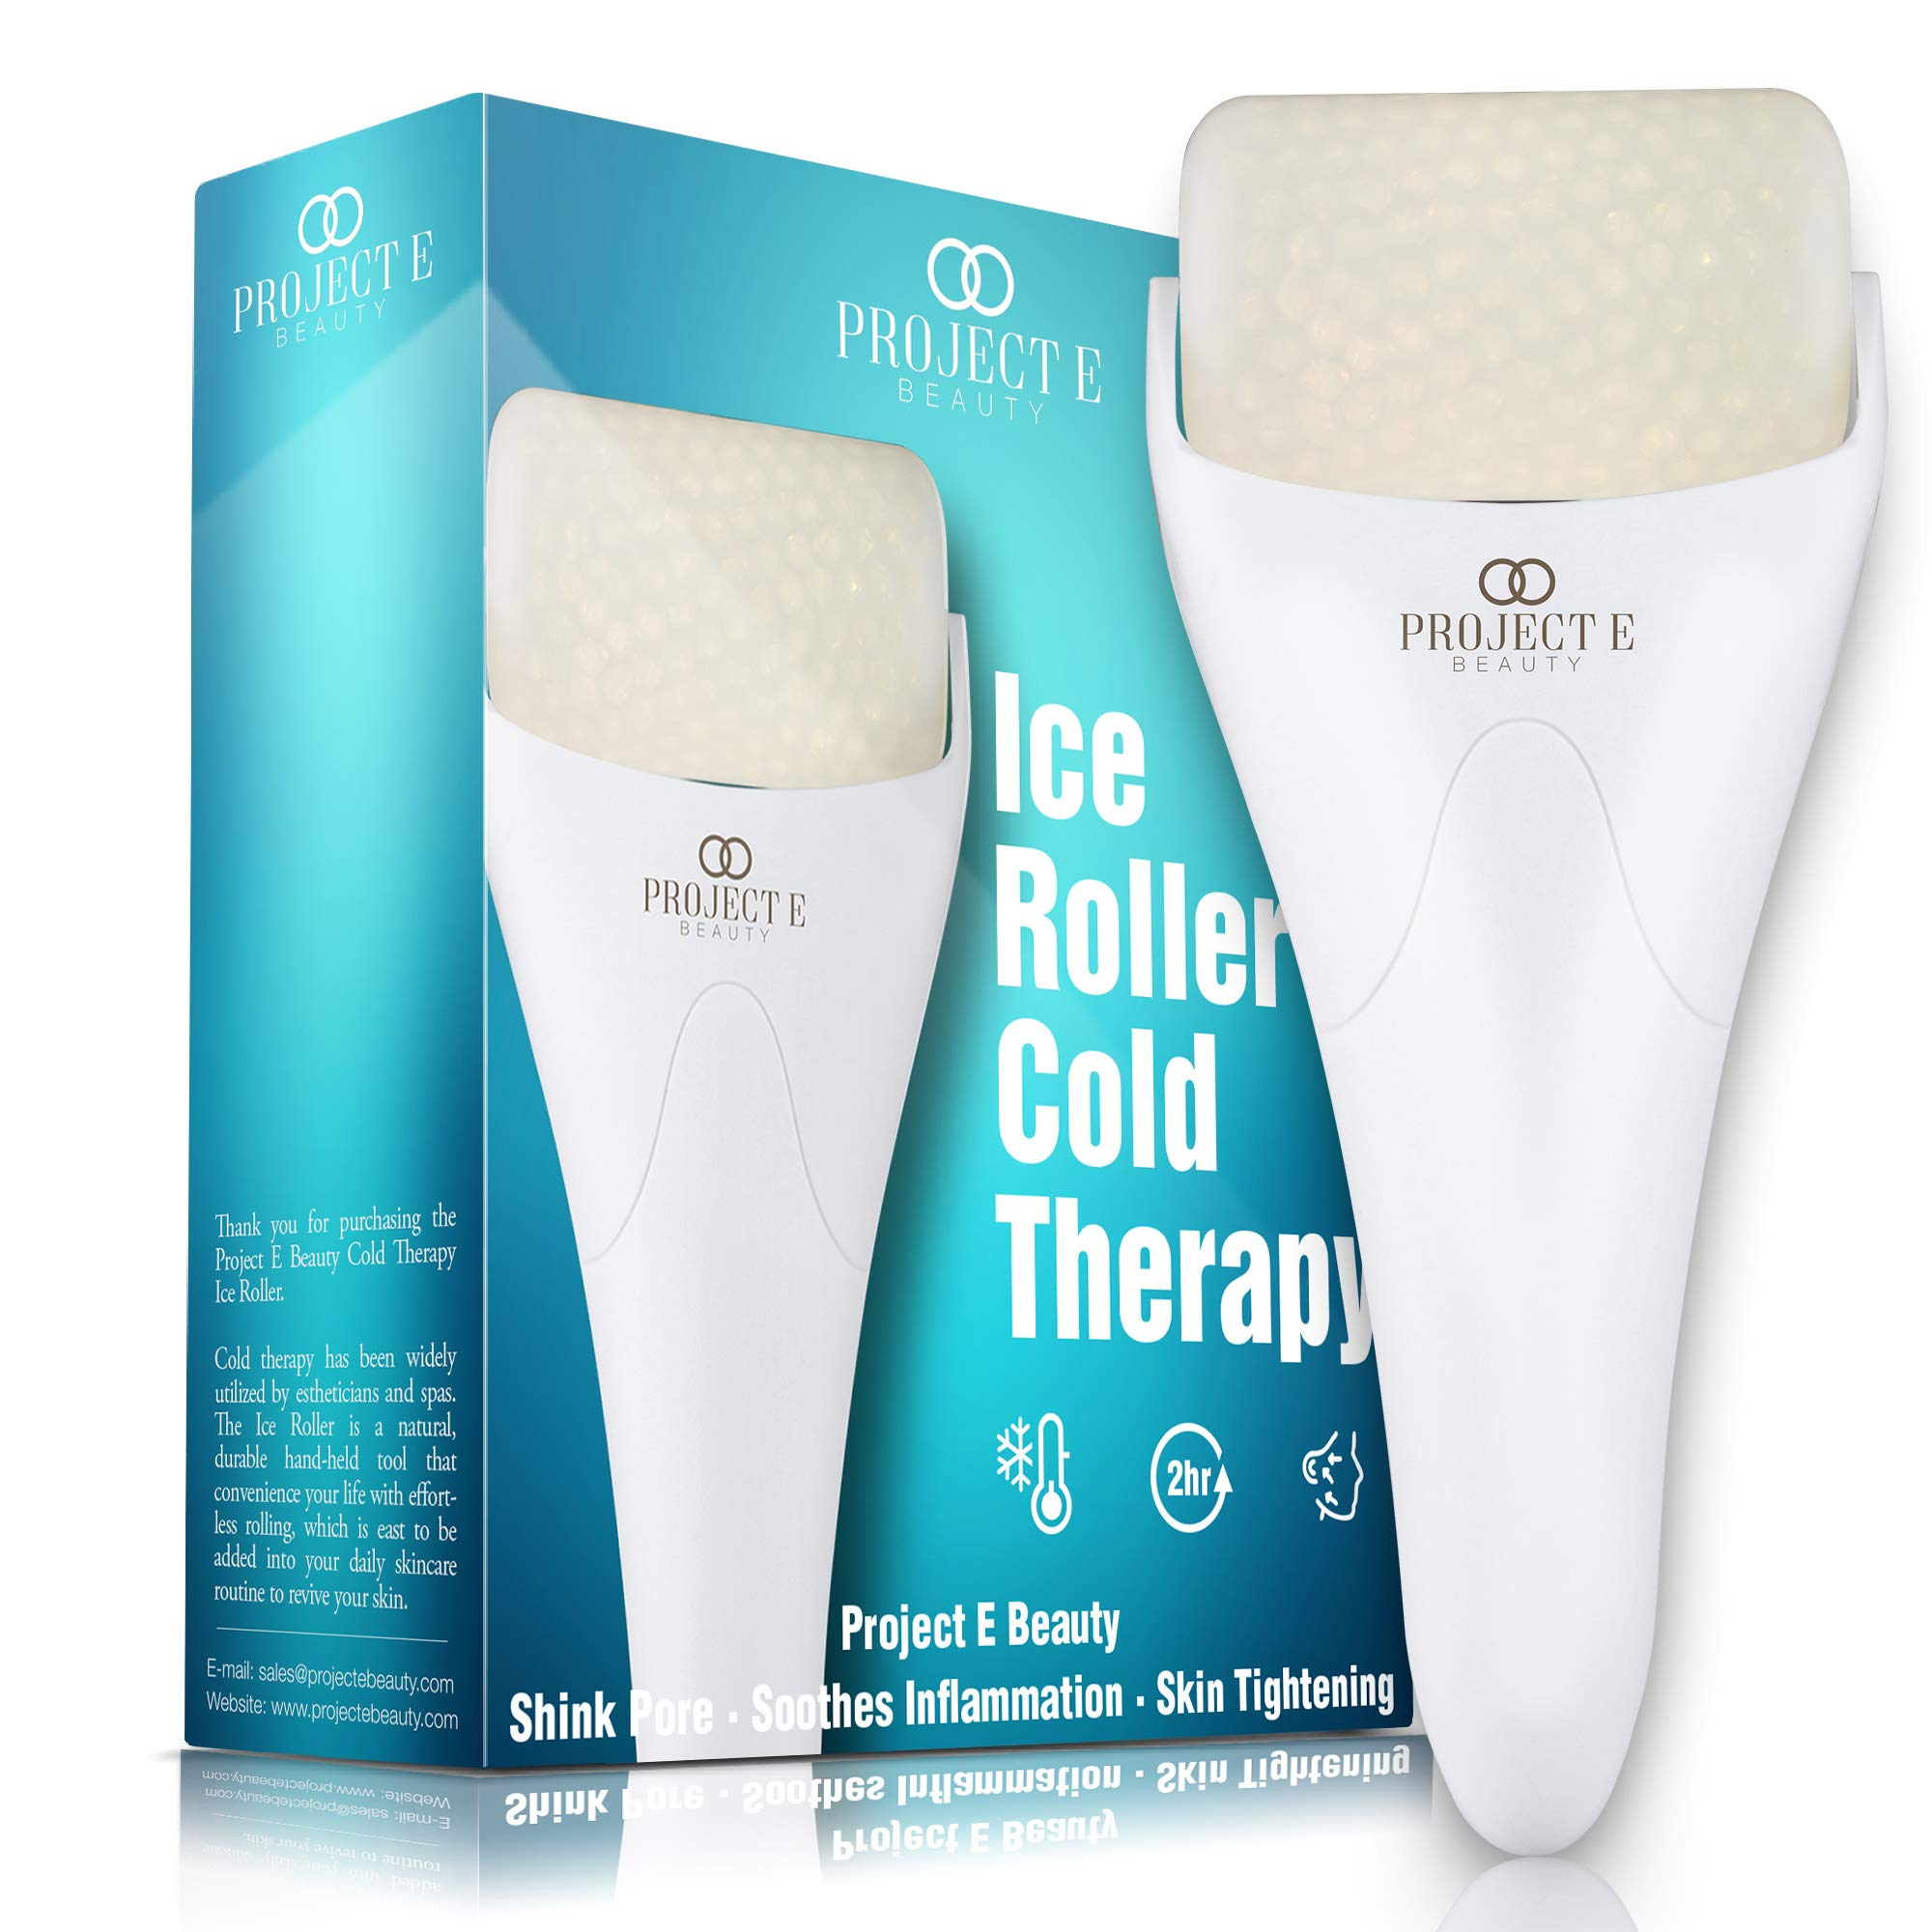 Ice Roller Massager for Face Eye Body Massage Under Eye Puffiness Brightening Cooling Therapy Cool Roller Skin Tightening Skin Care Reduce Wrinkles Dark Circles Muscle Soreness Pain Relief Redness by Project E Beauty